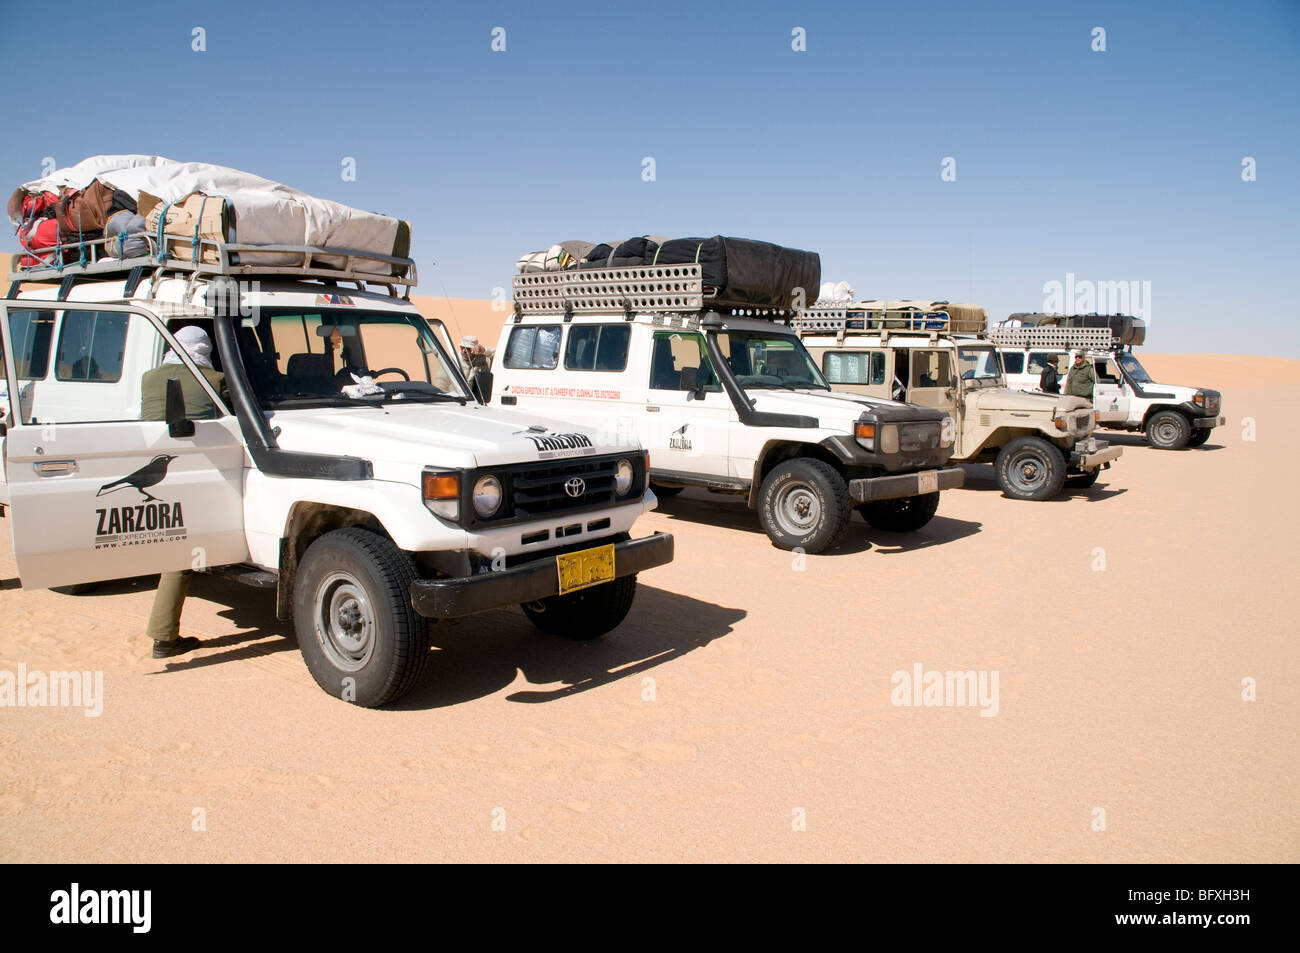 A convoy of Sahara desert safari 4x4 jeeps on the edge of the Great Sand Sea deep in the Western Desert region of - Stock Image